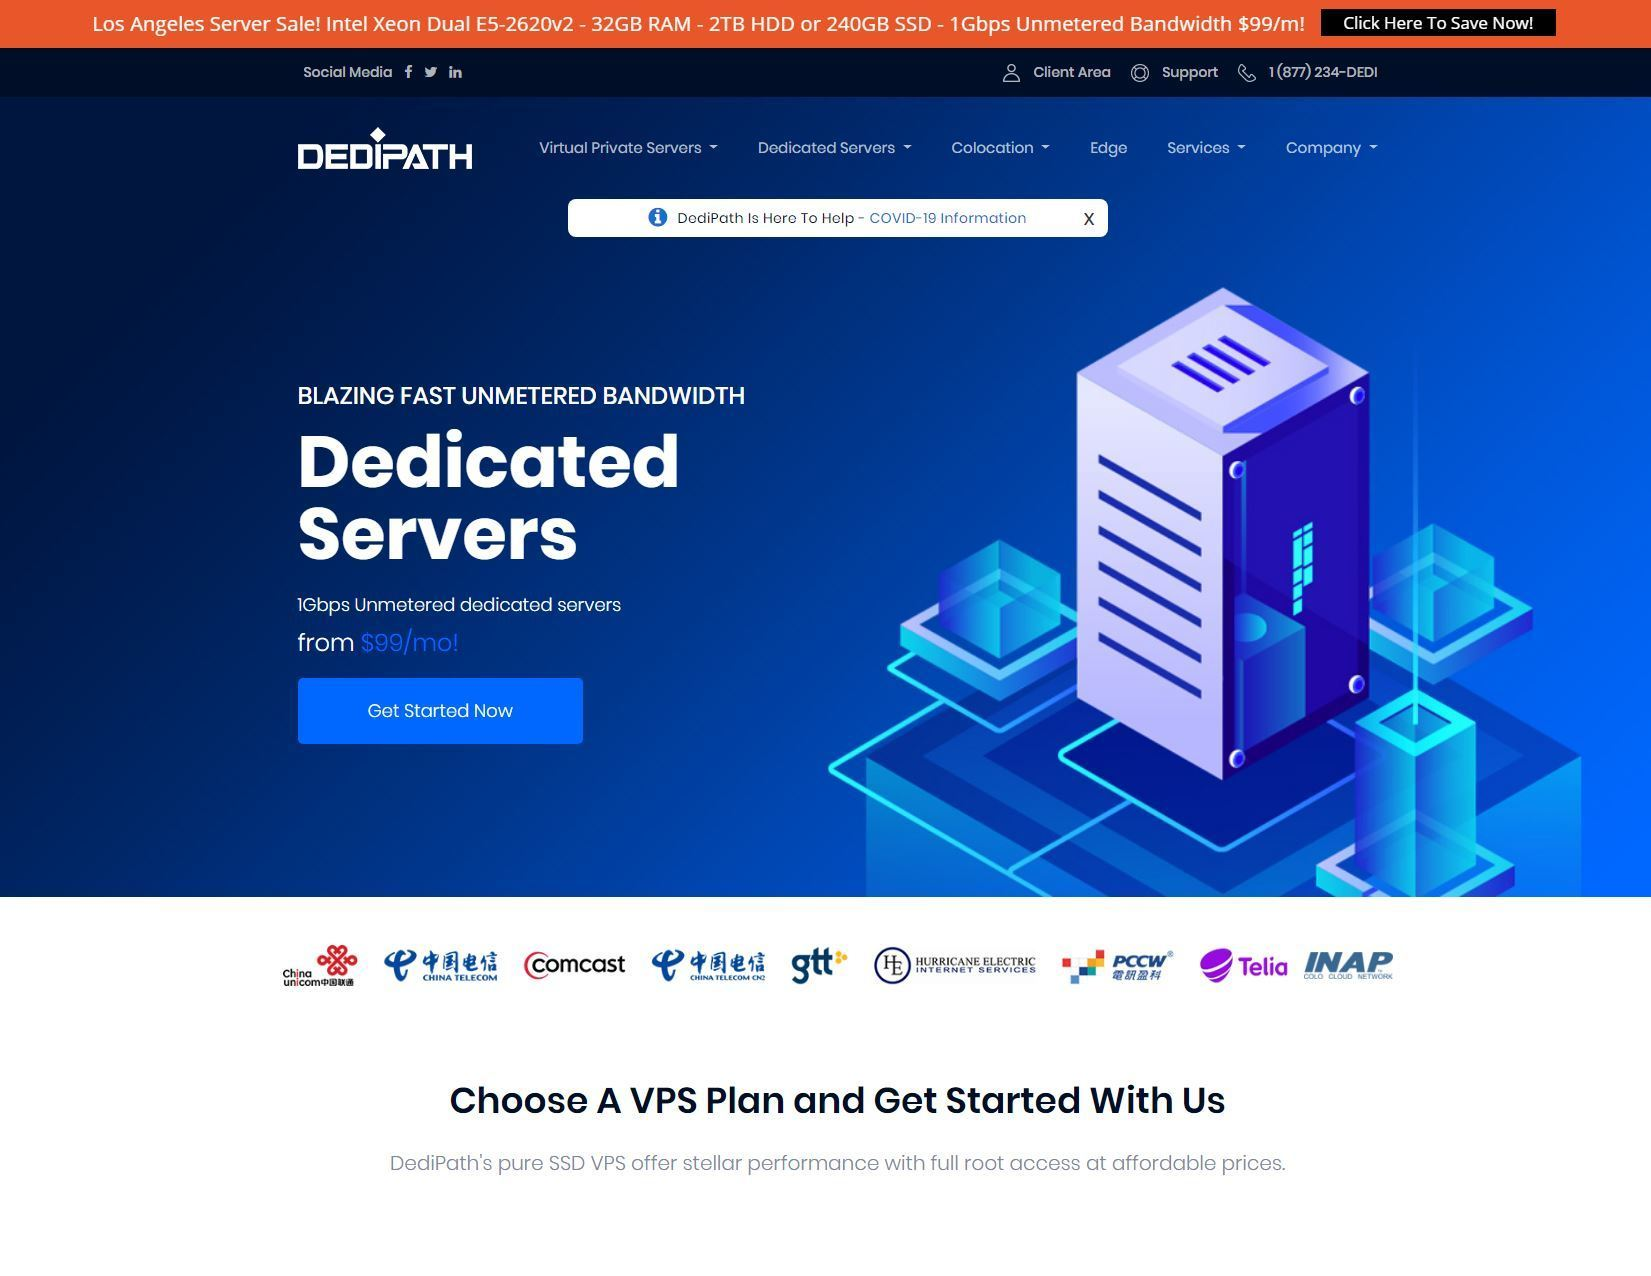 DediPath - VPS and Dedicated Servers in Los Angeles and New Jersey